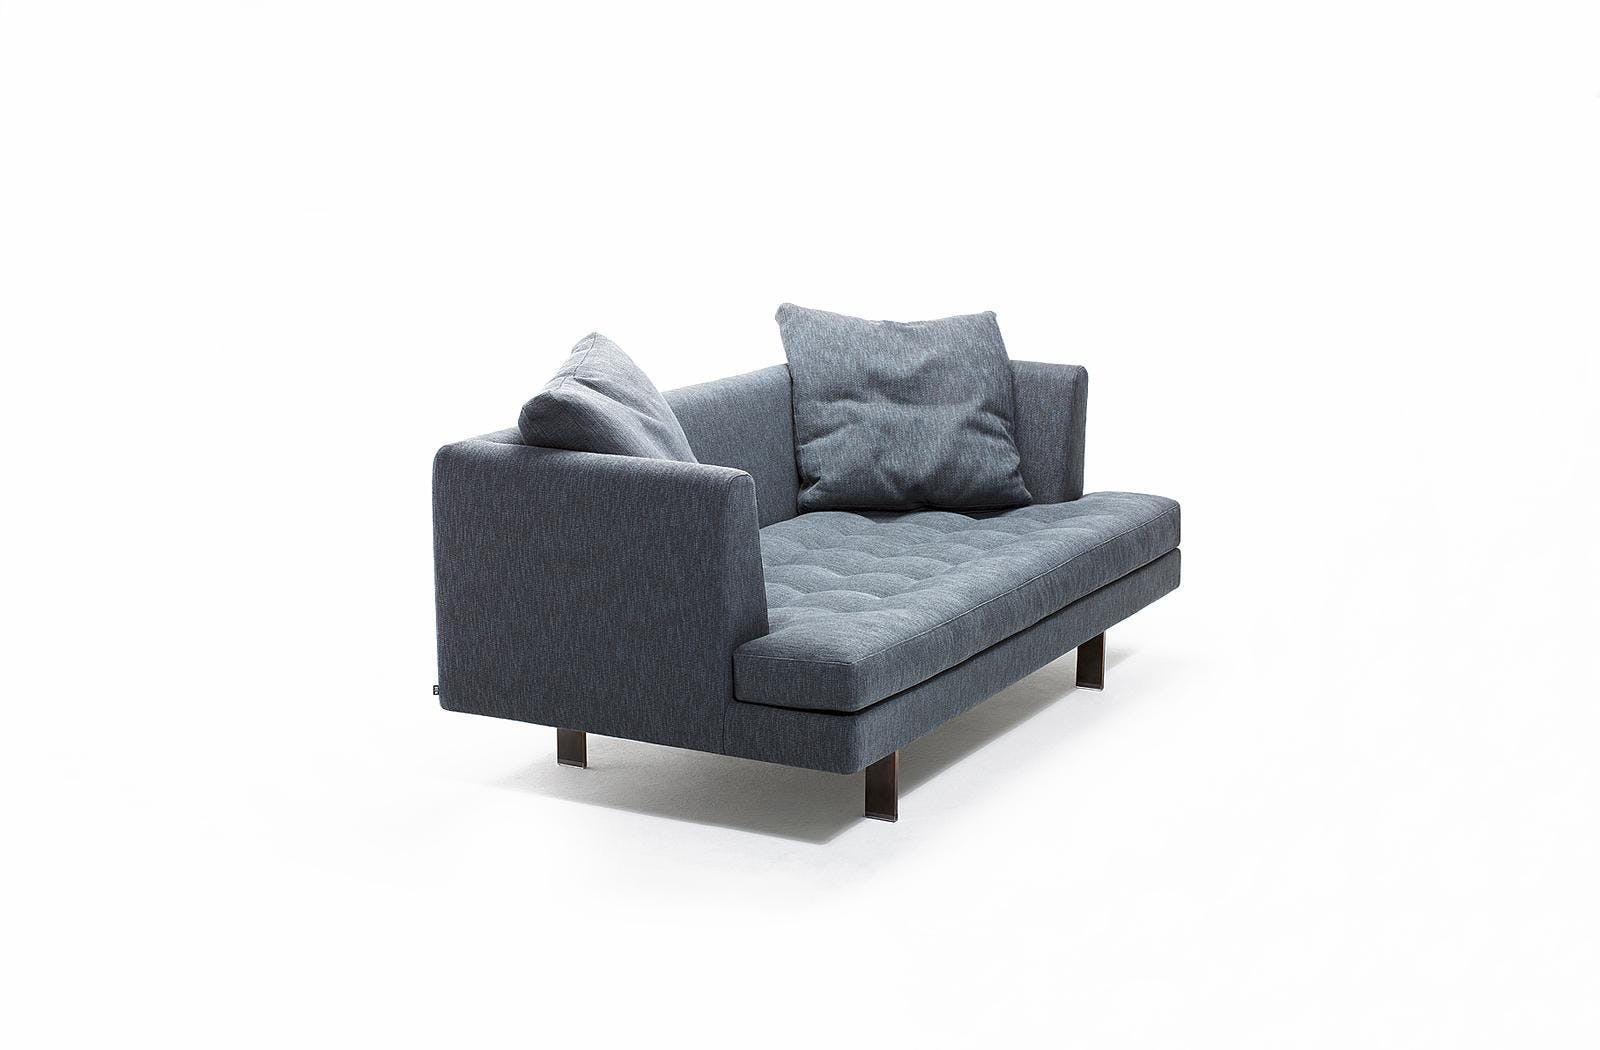 Bensen Edward Sofa Side Angle